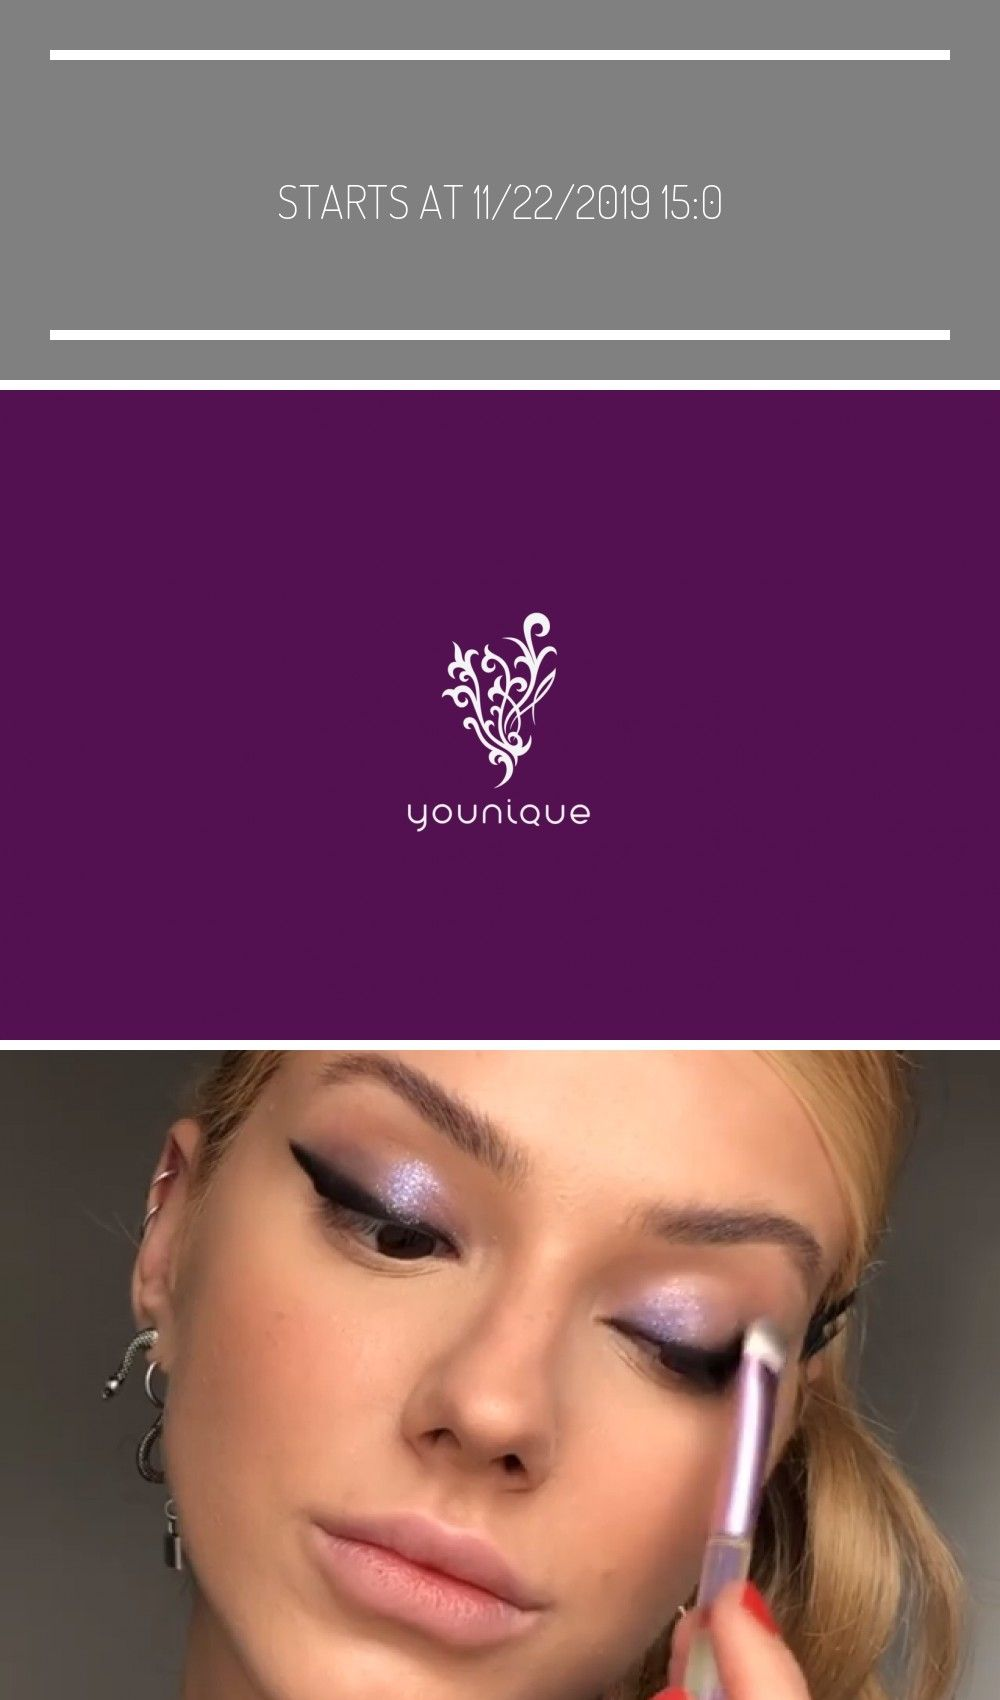 Starts at 11/22/2019 1500 MEZ makeup videos Crazy Purple Week Holiday Promotion